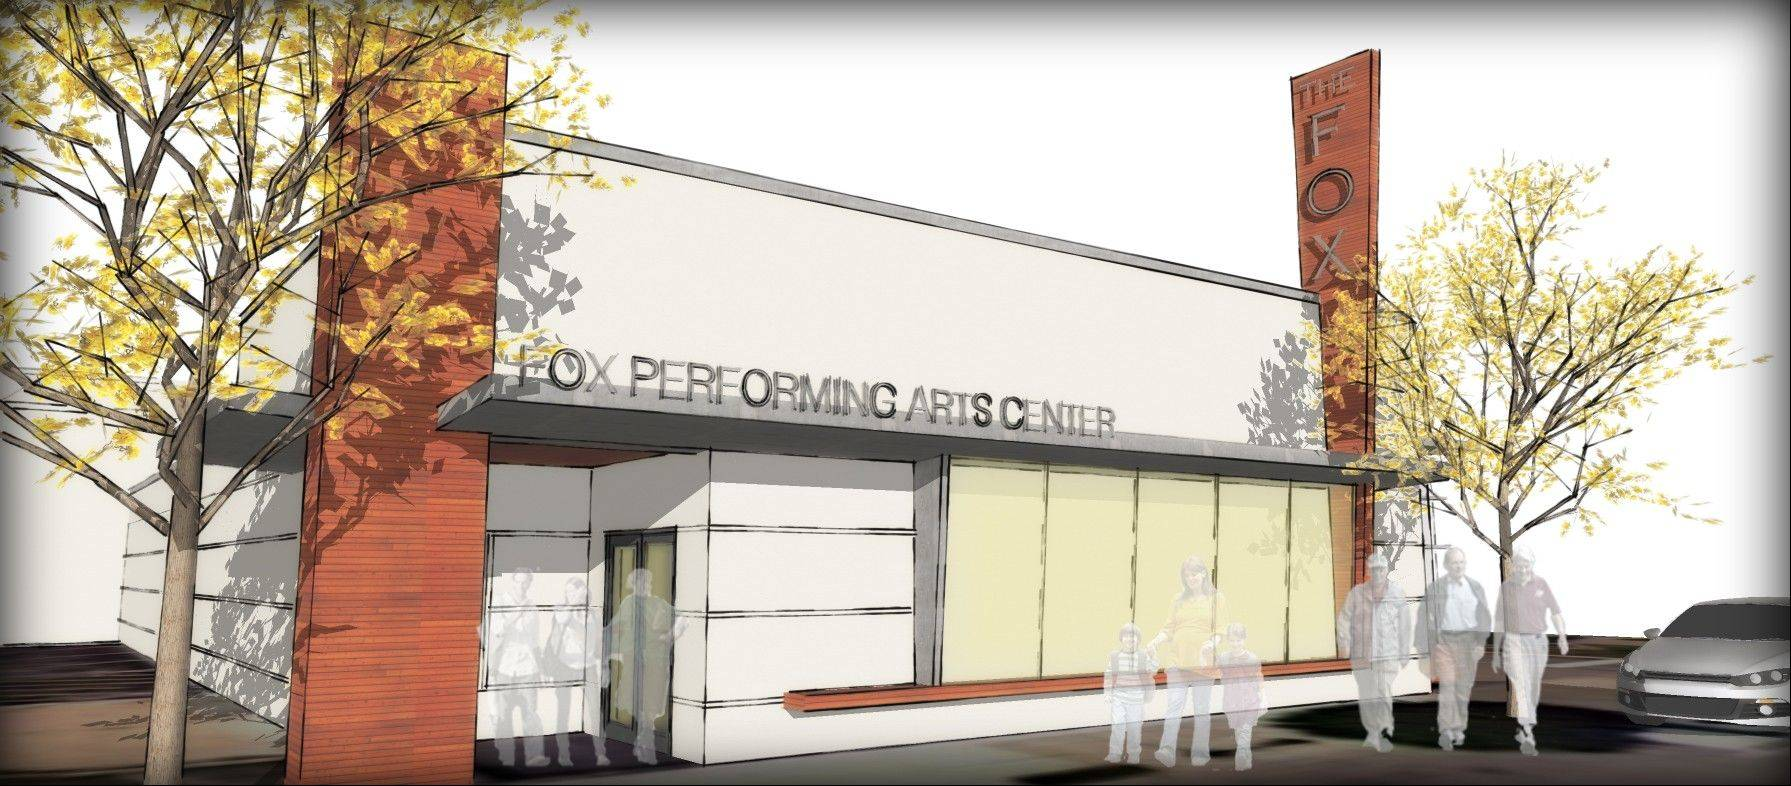 A rendering of what the old Ziegler's Ace Hardware store in West Dundee would look like if it's converted into the Fox Performing Arts Center.